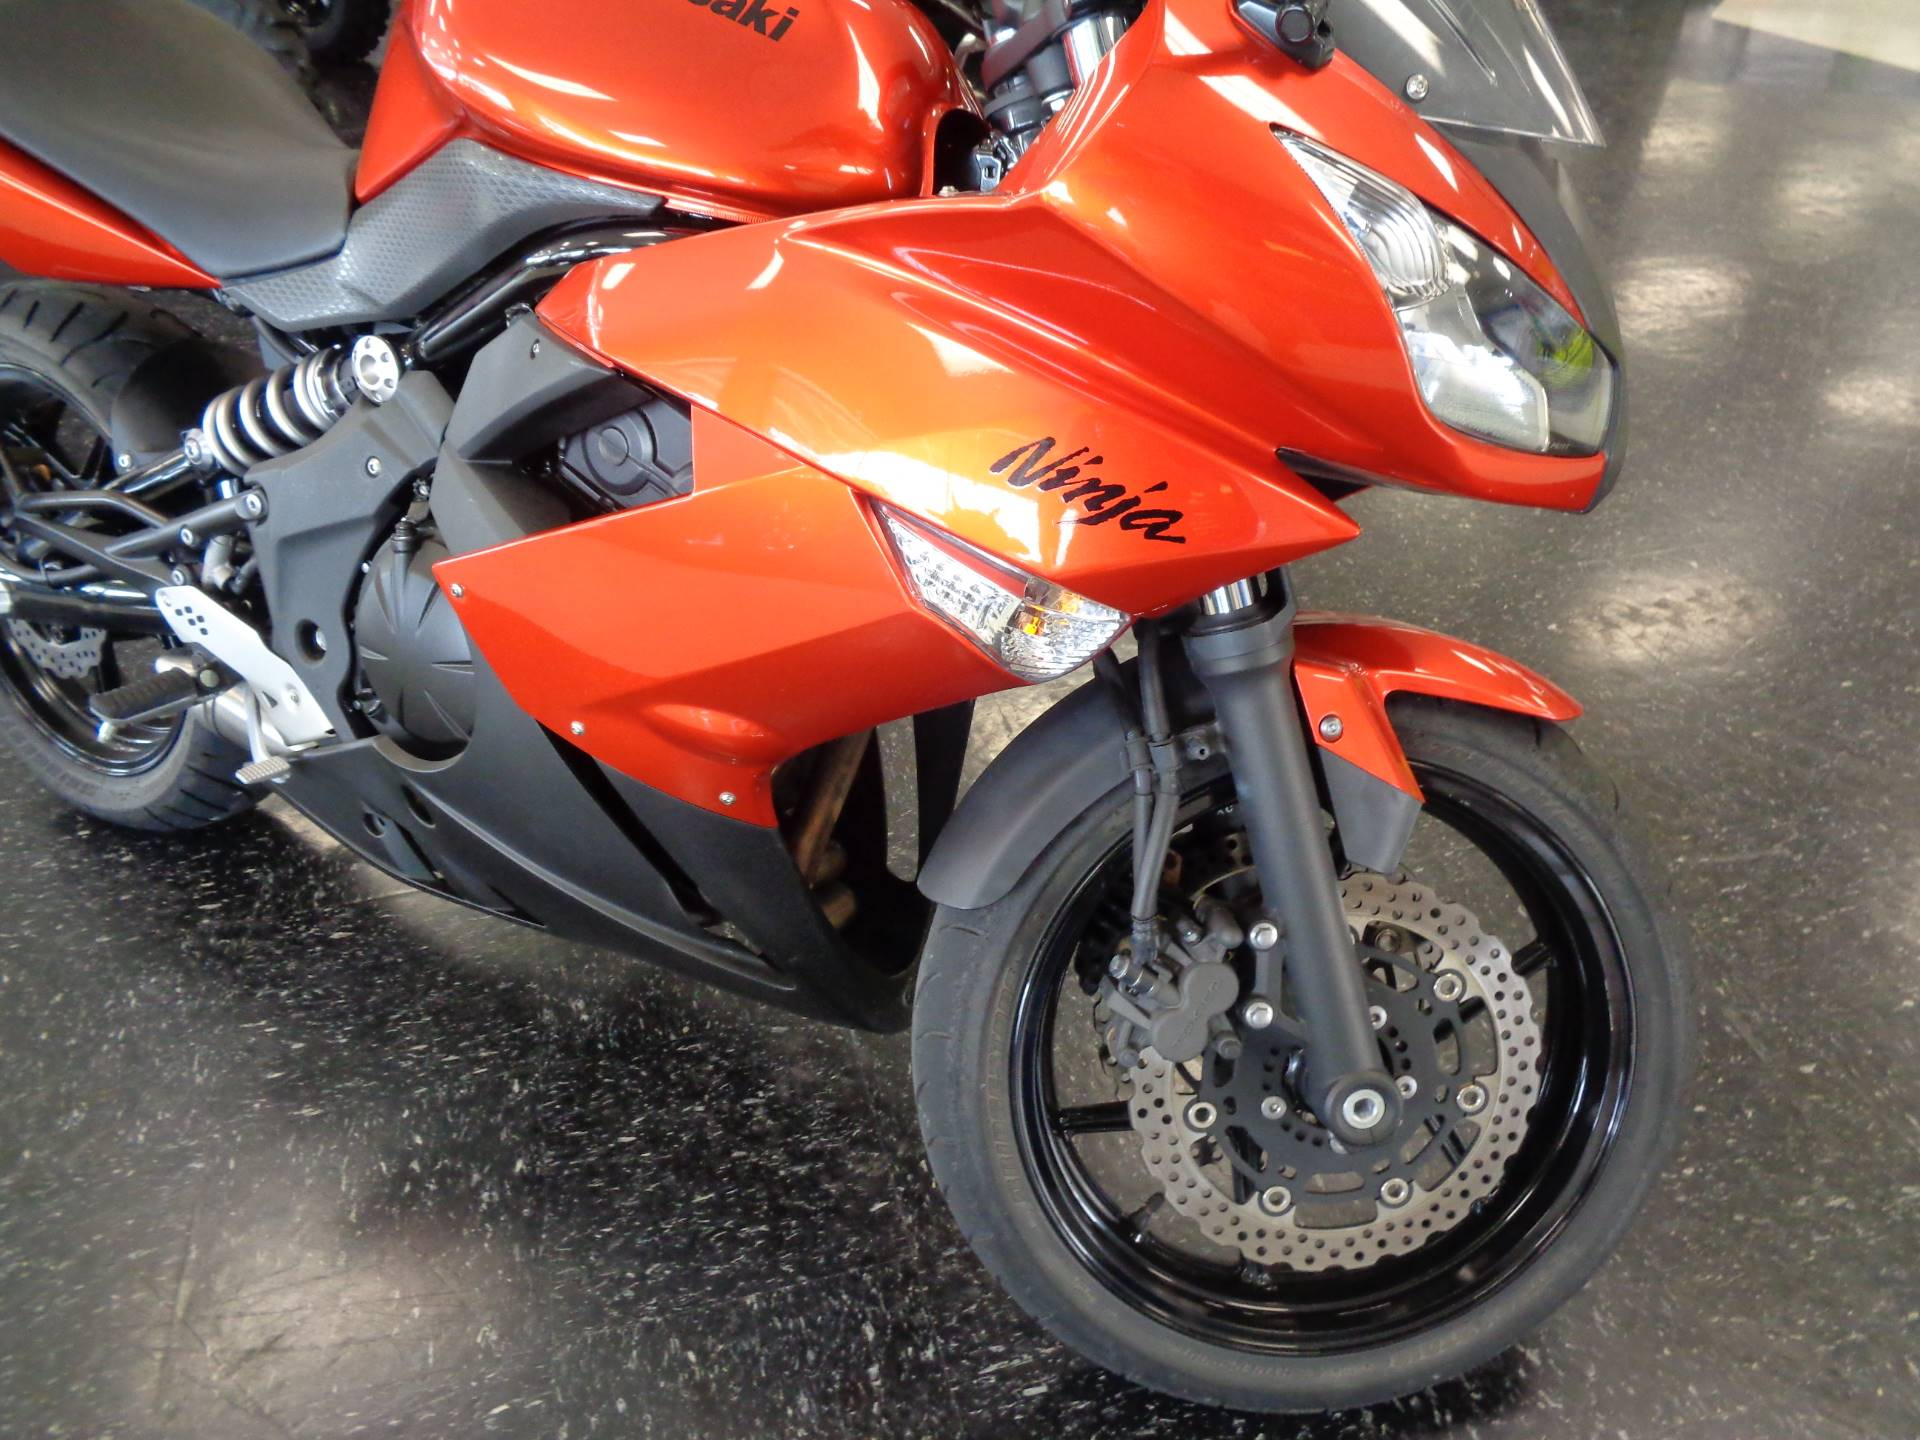 2011 Kawasaki Ninja® 650R in Broken Arrow, Oklahoma - Photo 2